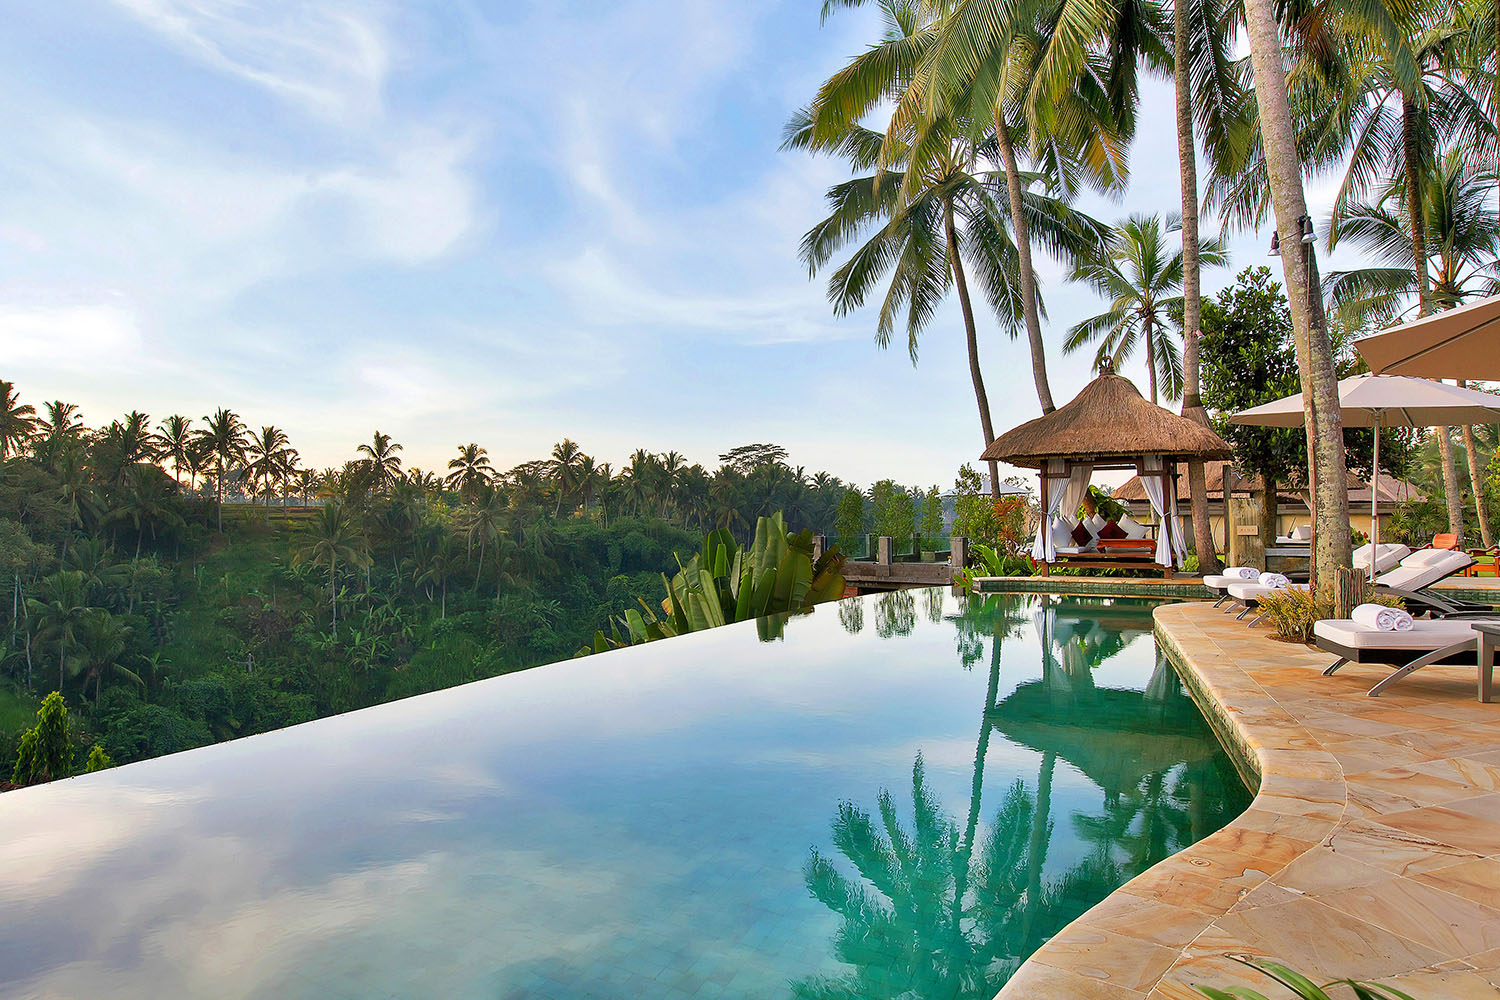 Viceroy bali review hotels accommodation luxury for Top hotels in ubud bali